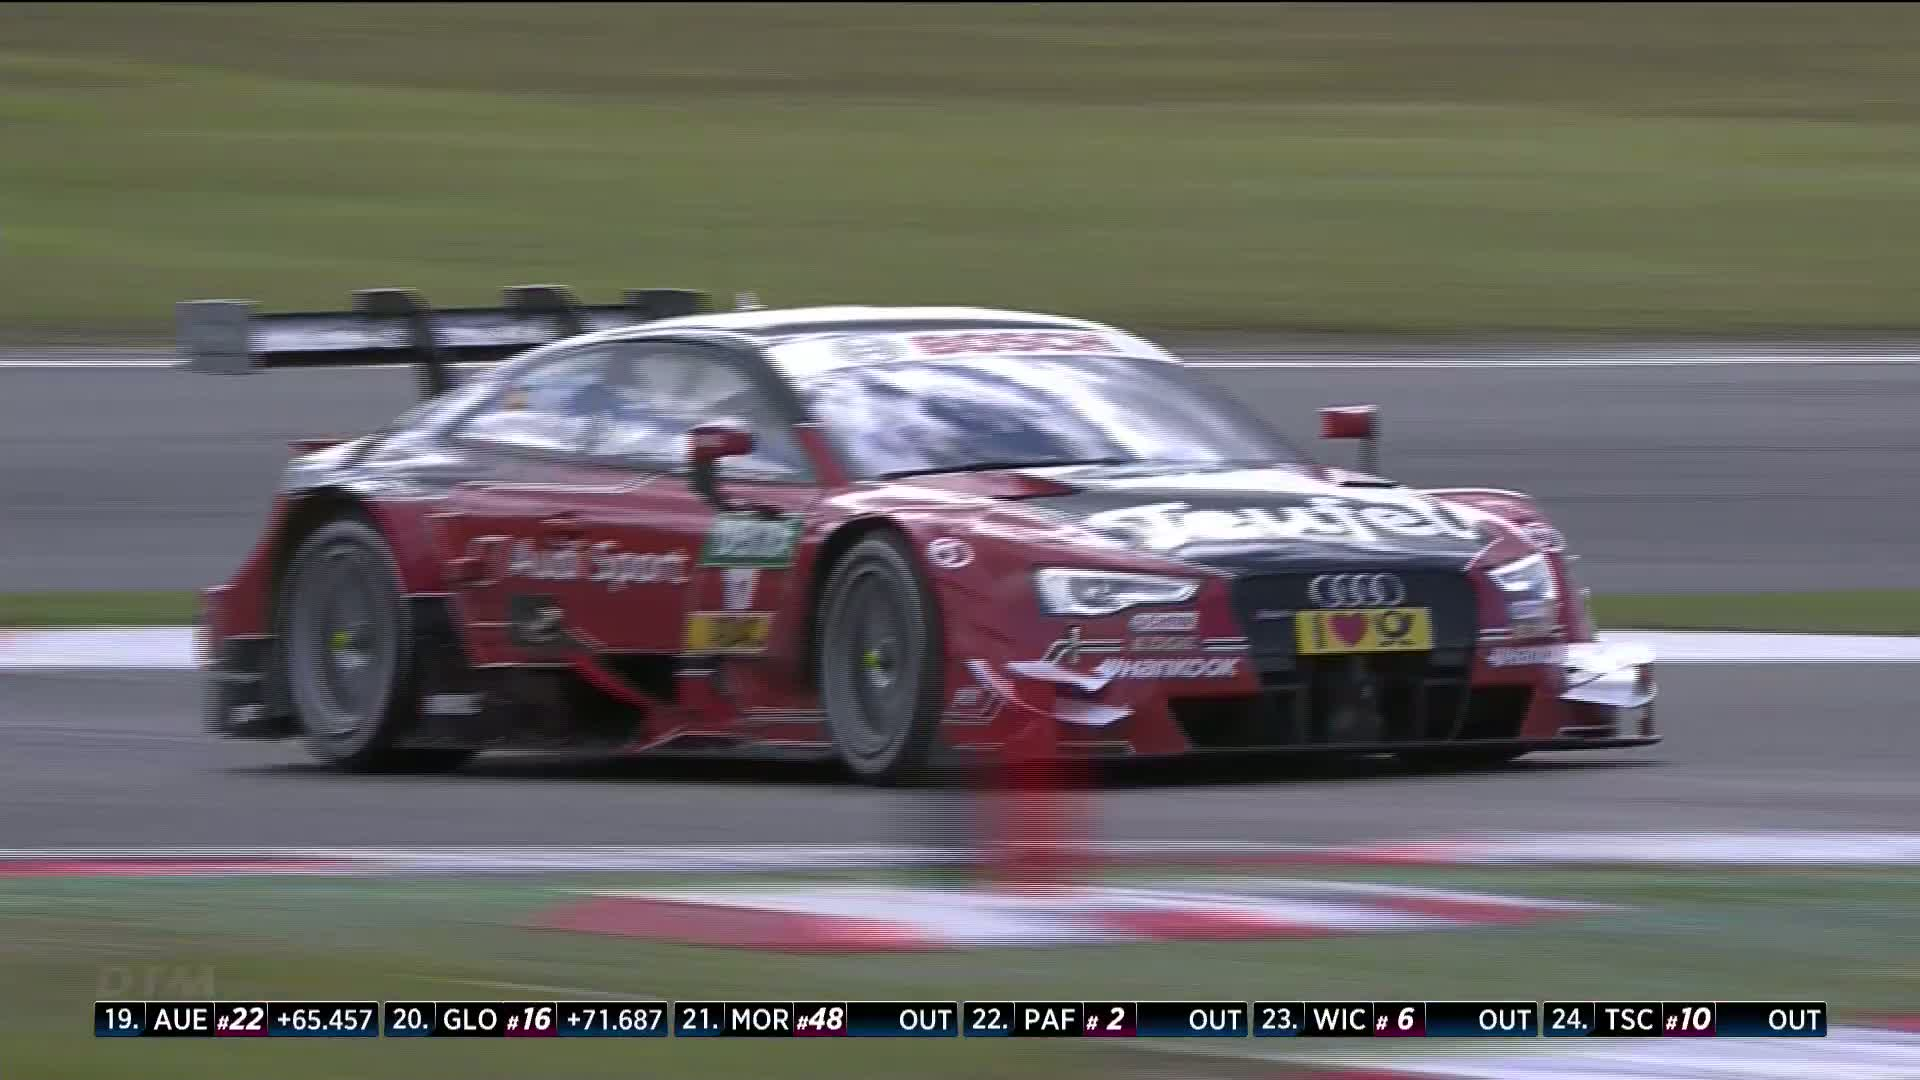 60 Seconds of Audi Sport 89/2015 - DTM Nürburgring, Race 2